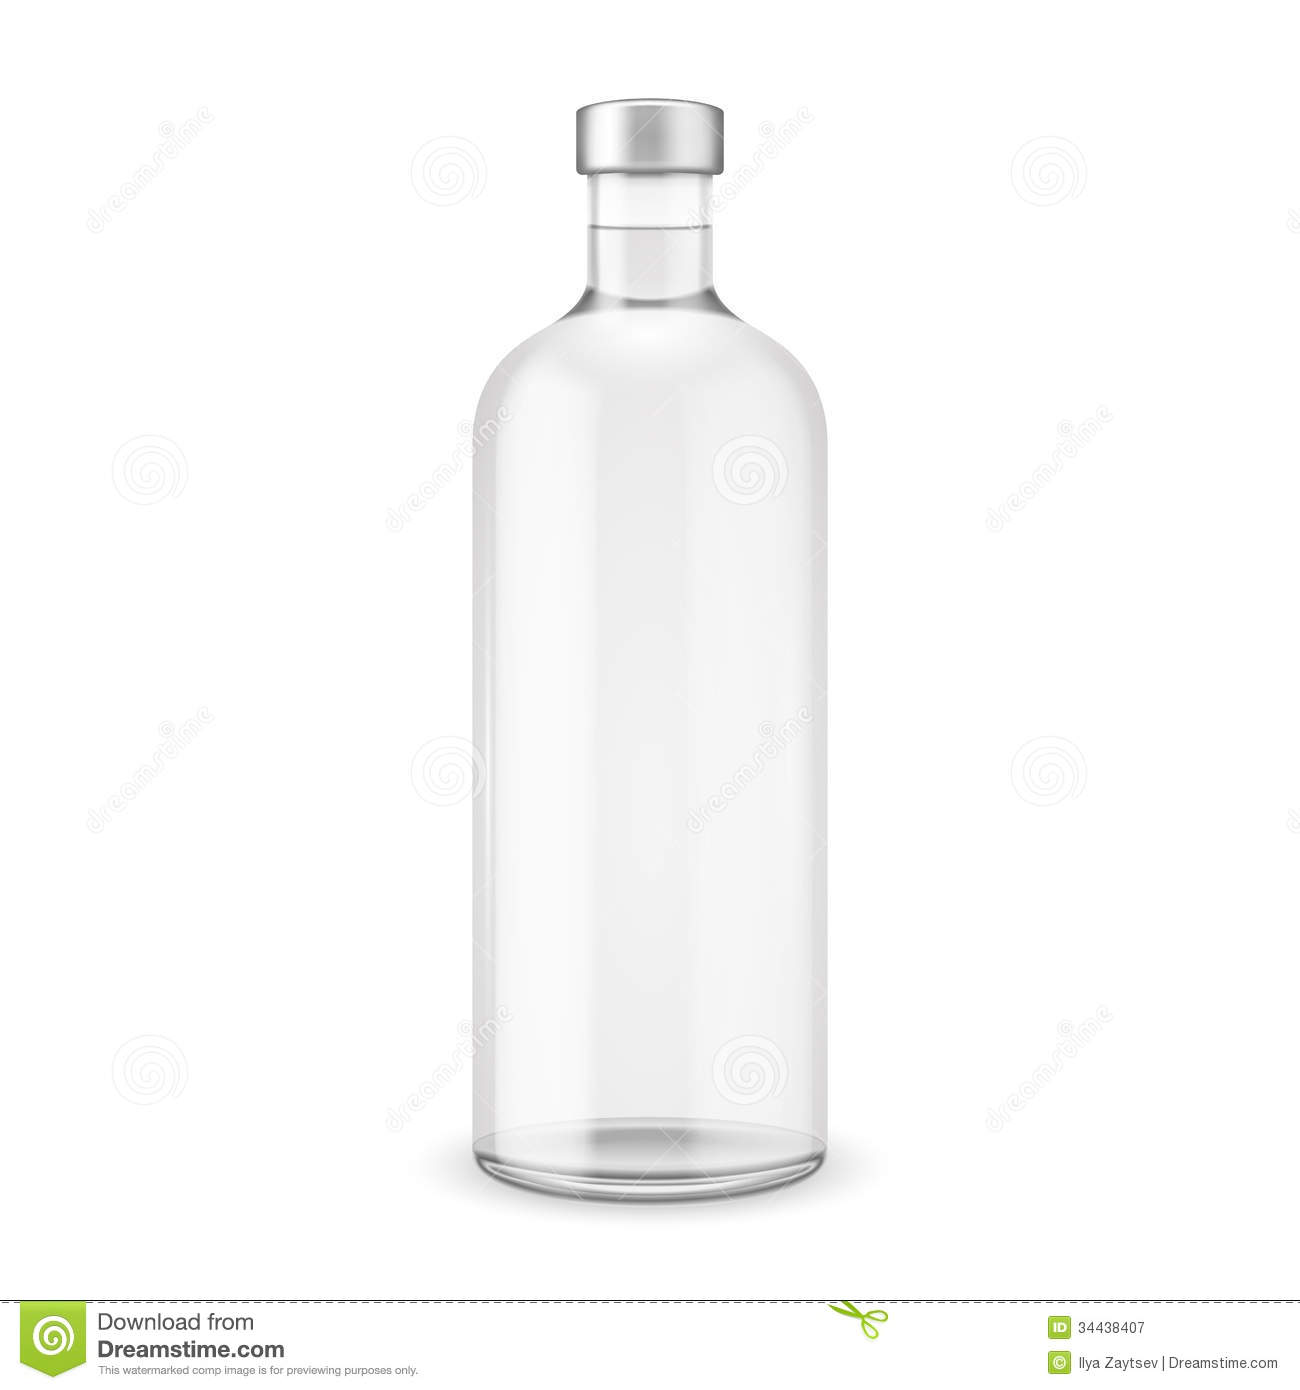 Clear Bottle Clipart - Clipart Kid